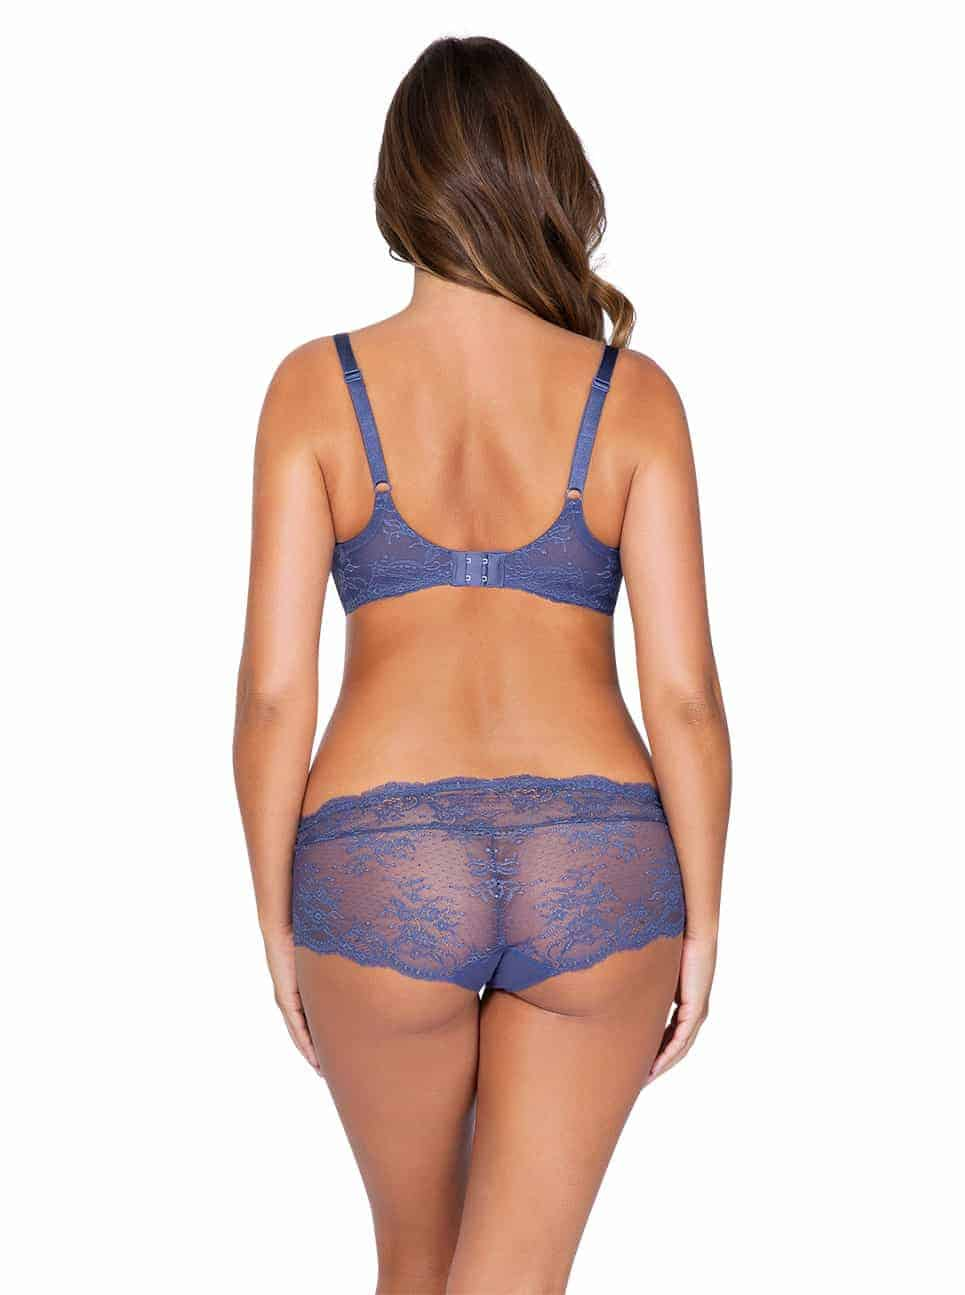 Sandrine P5352 UnlinedWire P5355 Hipster FrenchBlue back - Sandrine Hipster - French Blue - P5355